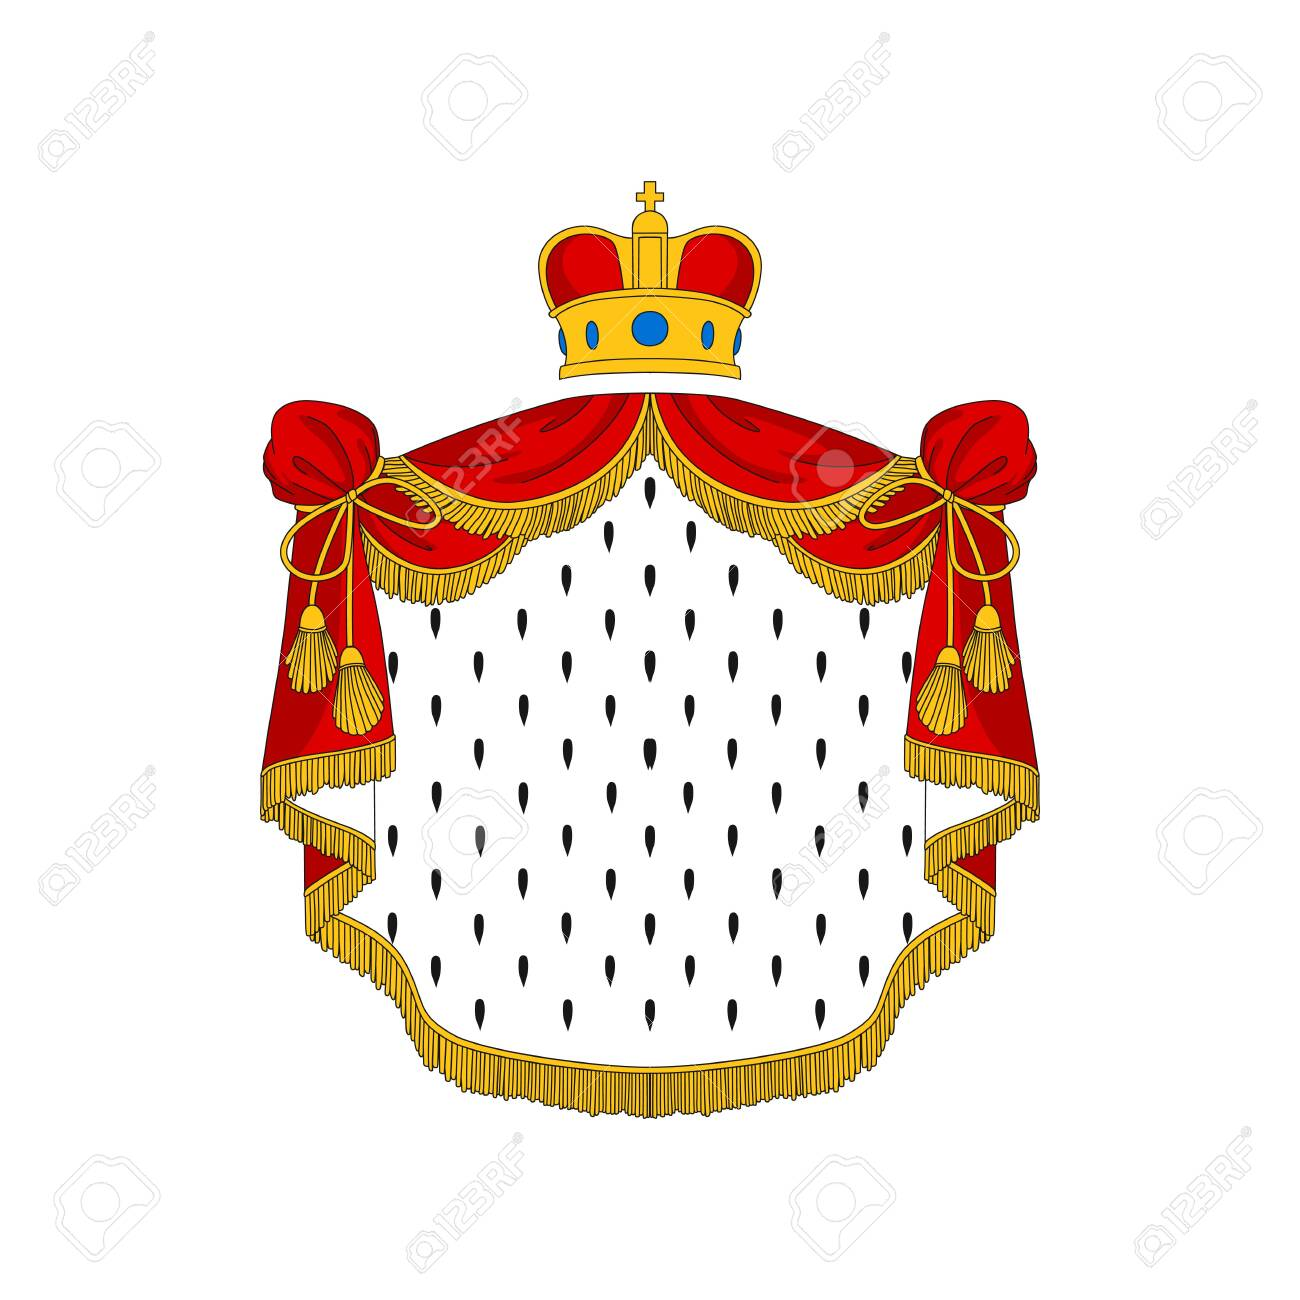 Royal Cape And Crown Color Vector Illustration Cartoon King Royalty Free Cliparts Vectors And Stock Illustration Image 144288370 Download this premium vector about medieval crowns cartoon color illustrations set., and discover more than 10 million professional graphic resources on freepik. royal cape and crown color vector illustration cartoon king